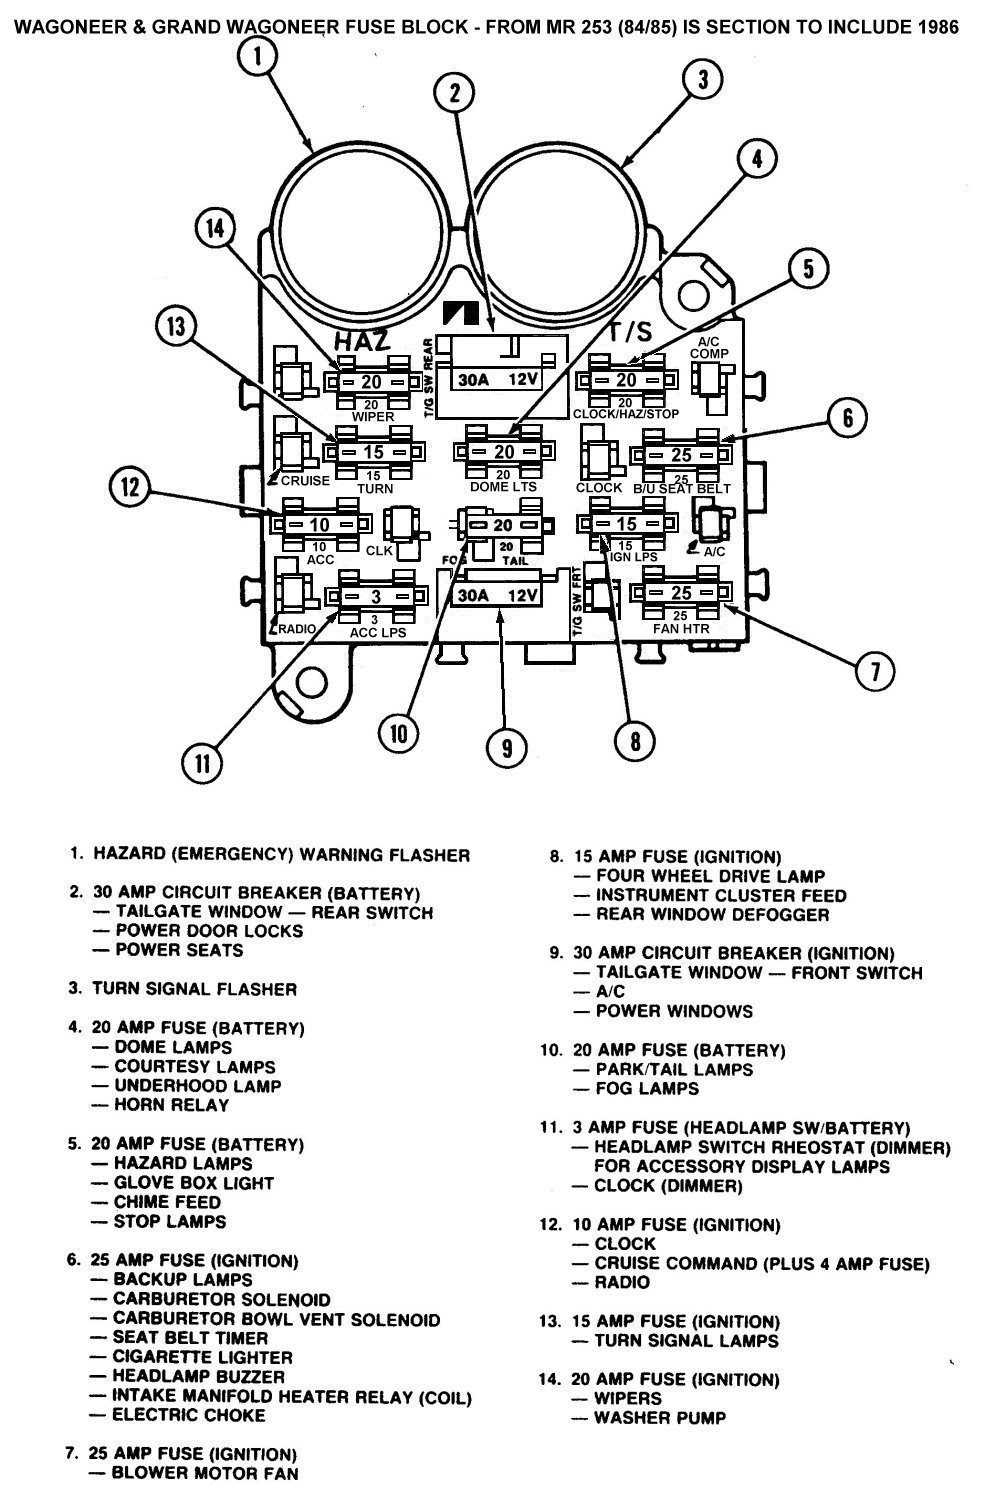 1977 Cj5 Fuse Box John Deere 425 Lawn Tractor Mower Wiring Schematics Begeboy Wiring Diagram Source